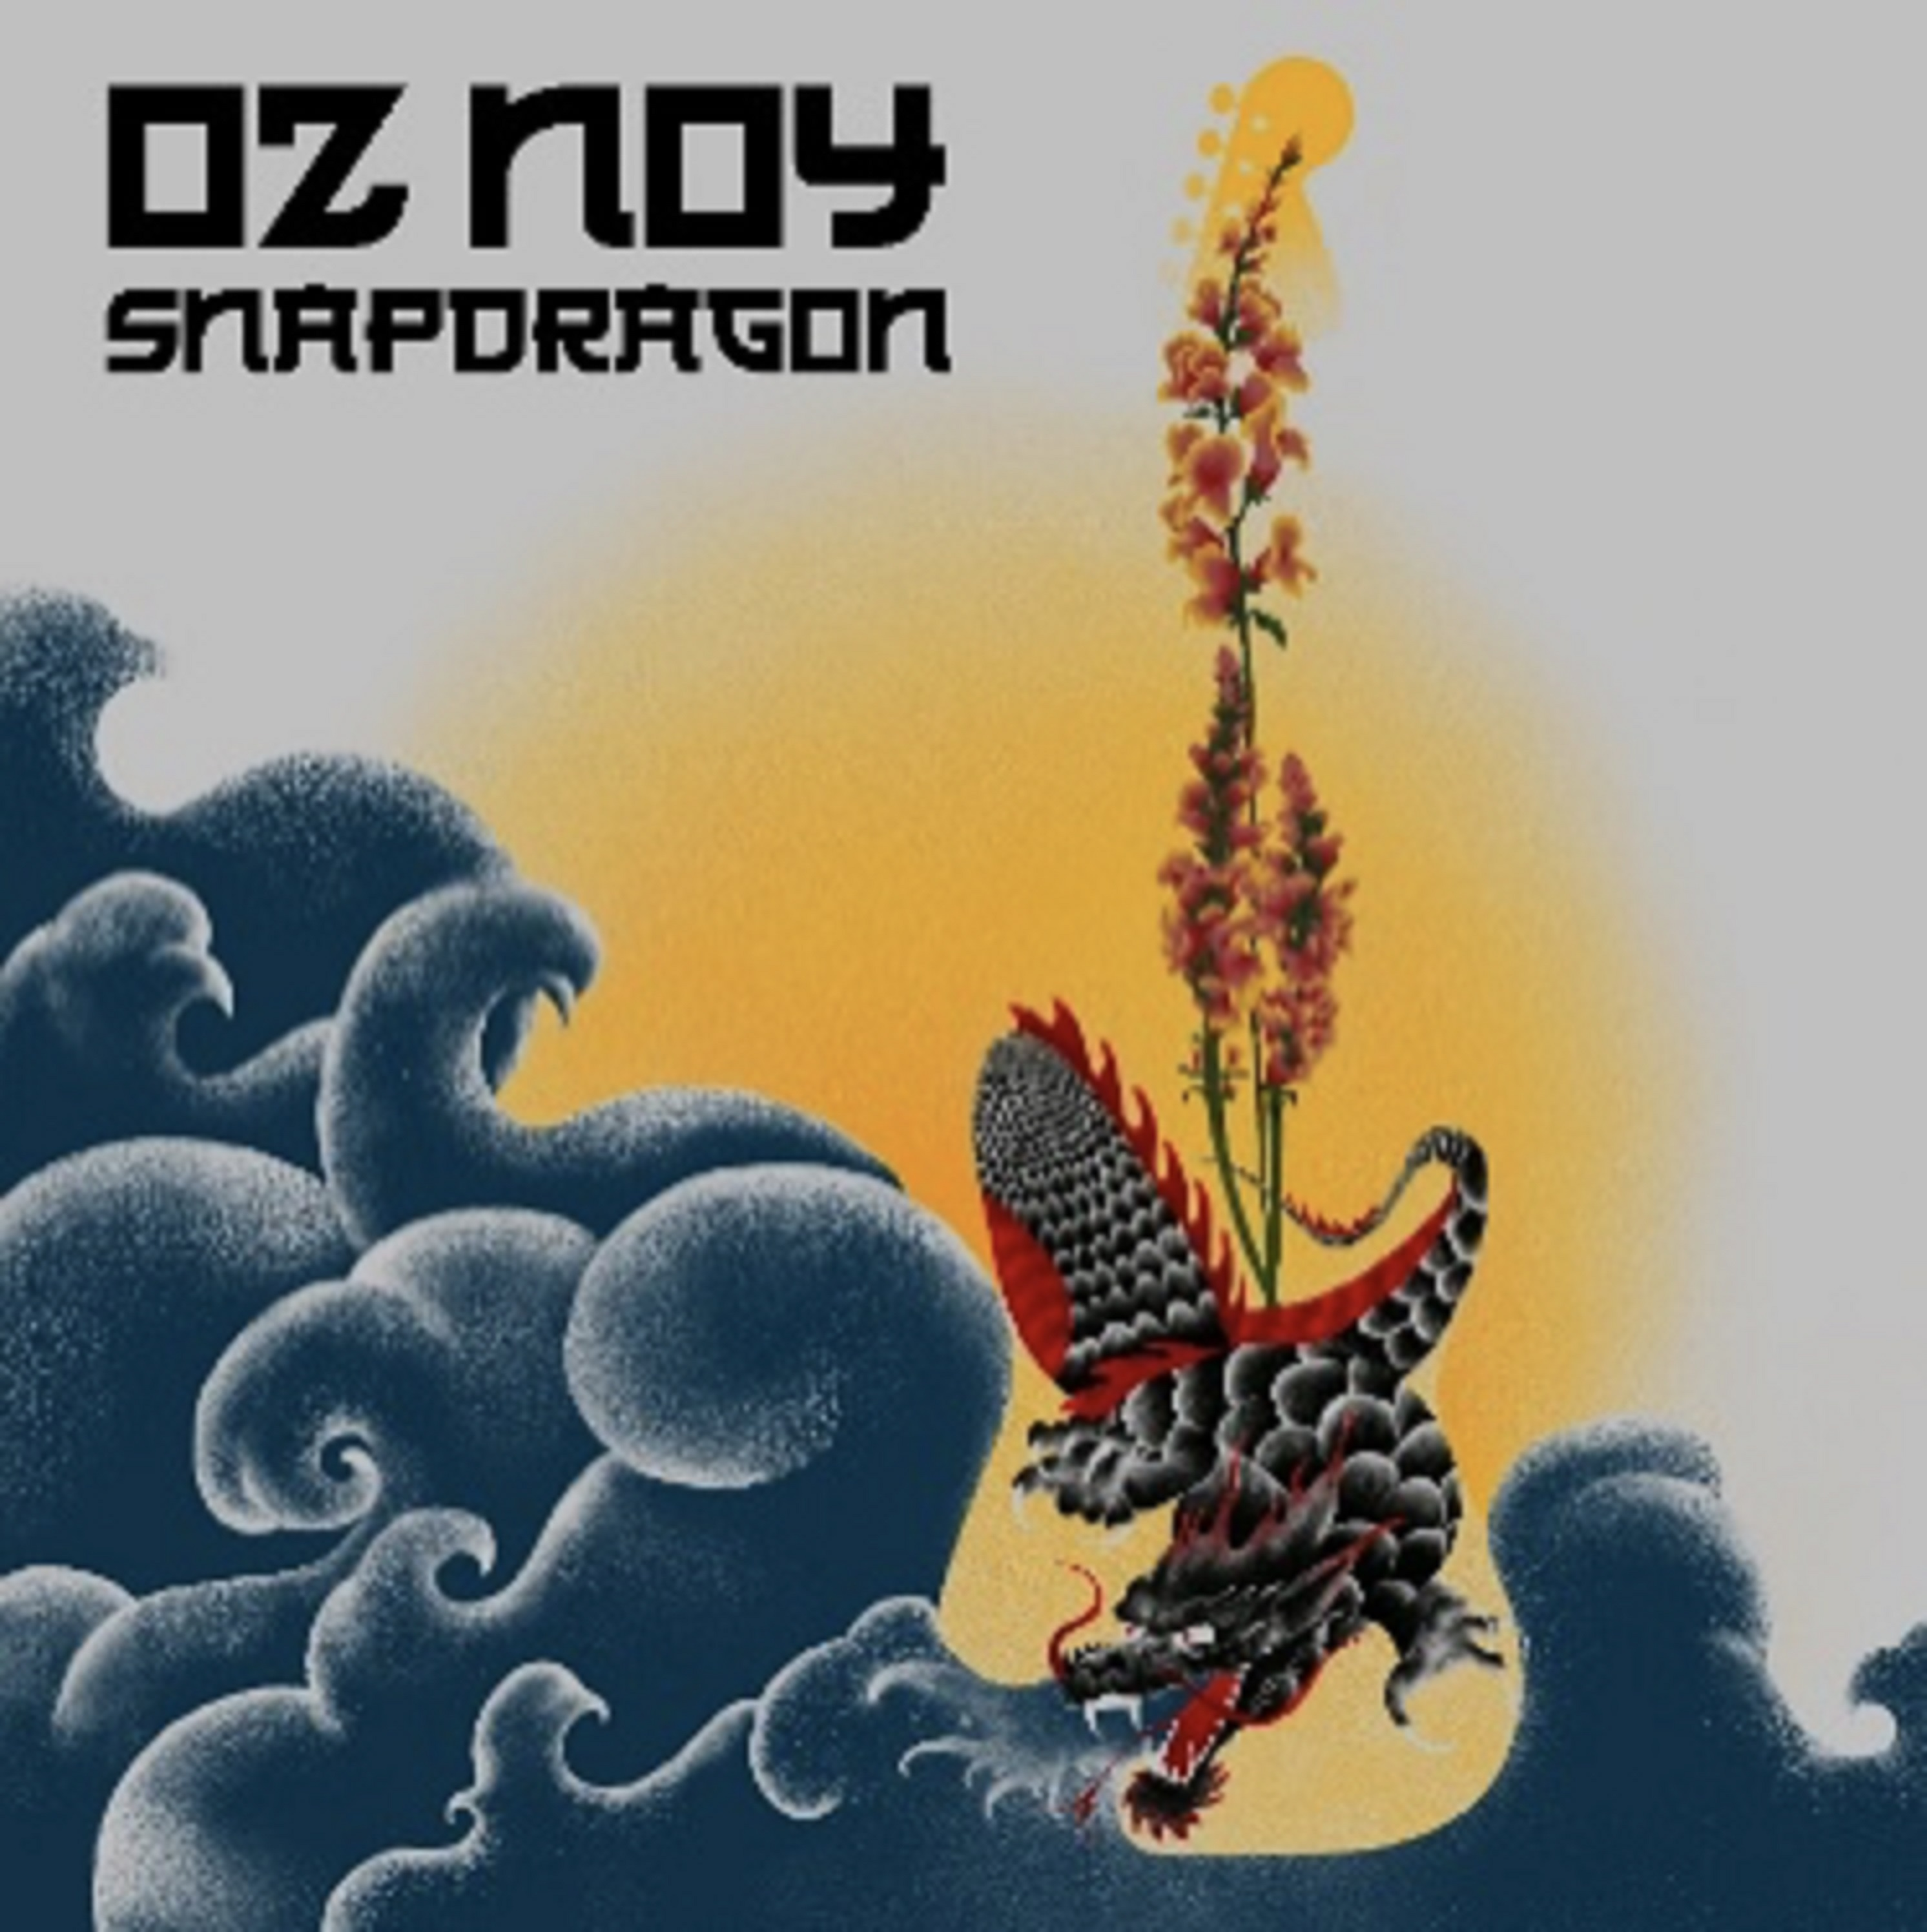 'Looni Tooni' Debut Track from OZ NOYs Snapdragon